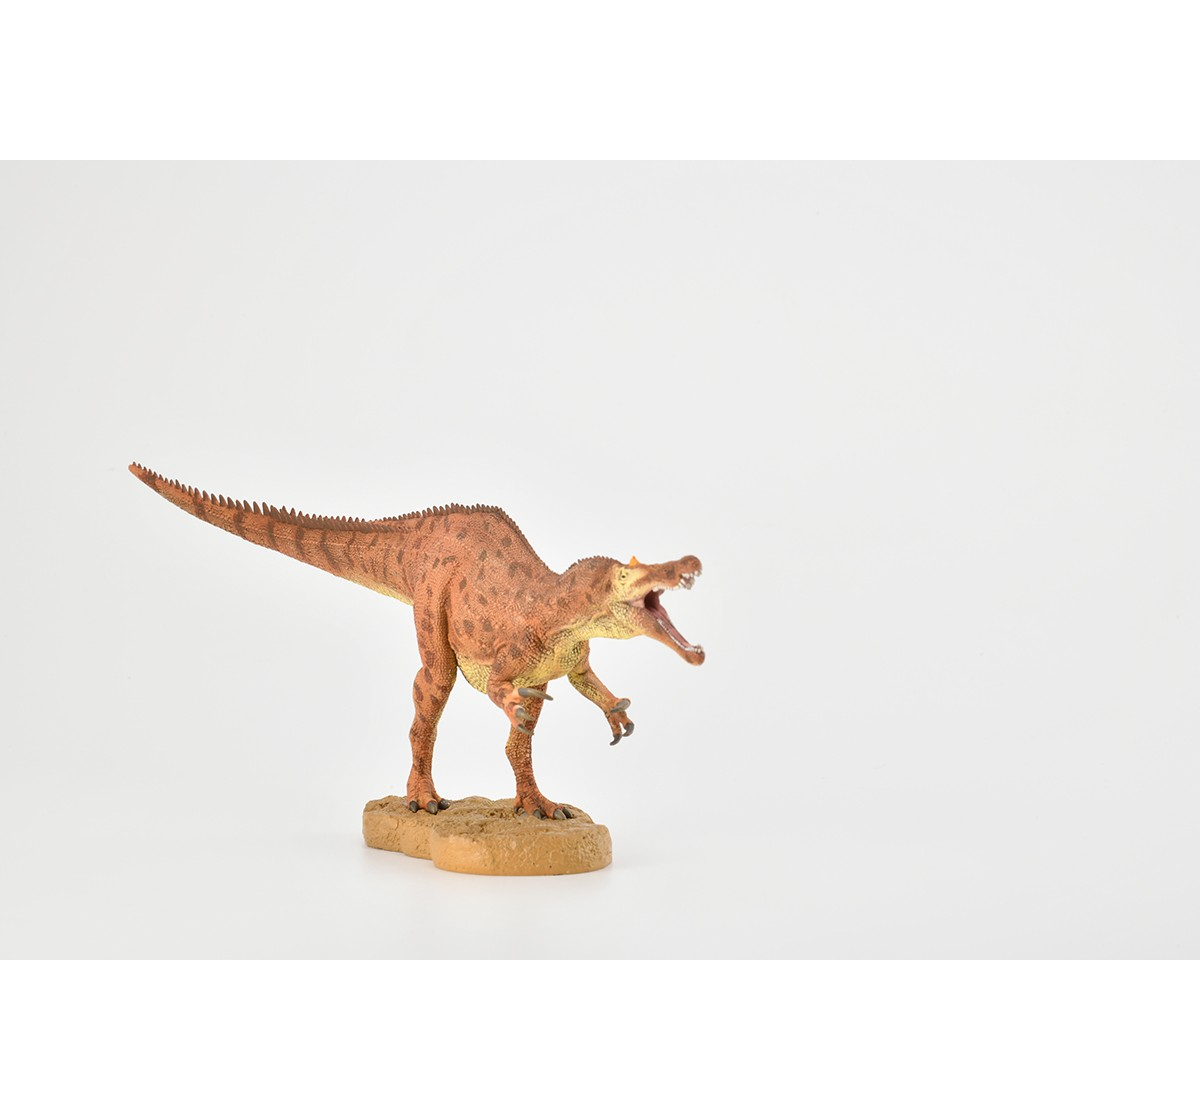 Collecta Baryonyx with Movable Jaw Deluxe 1: 40 Scale Animal Figure for Kids age 3Y+